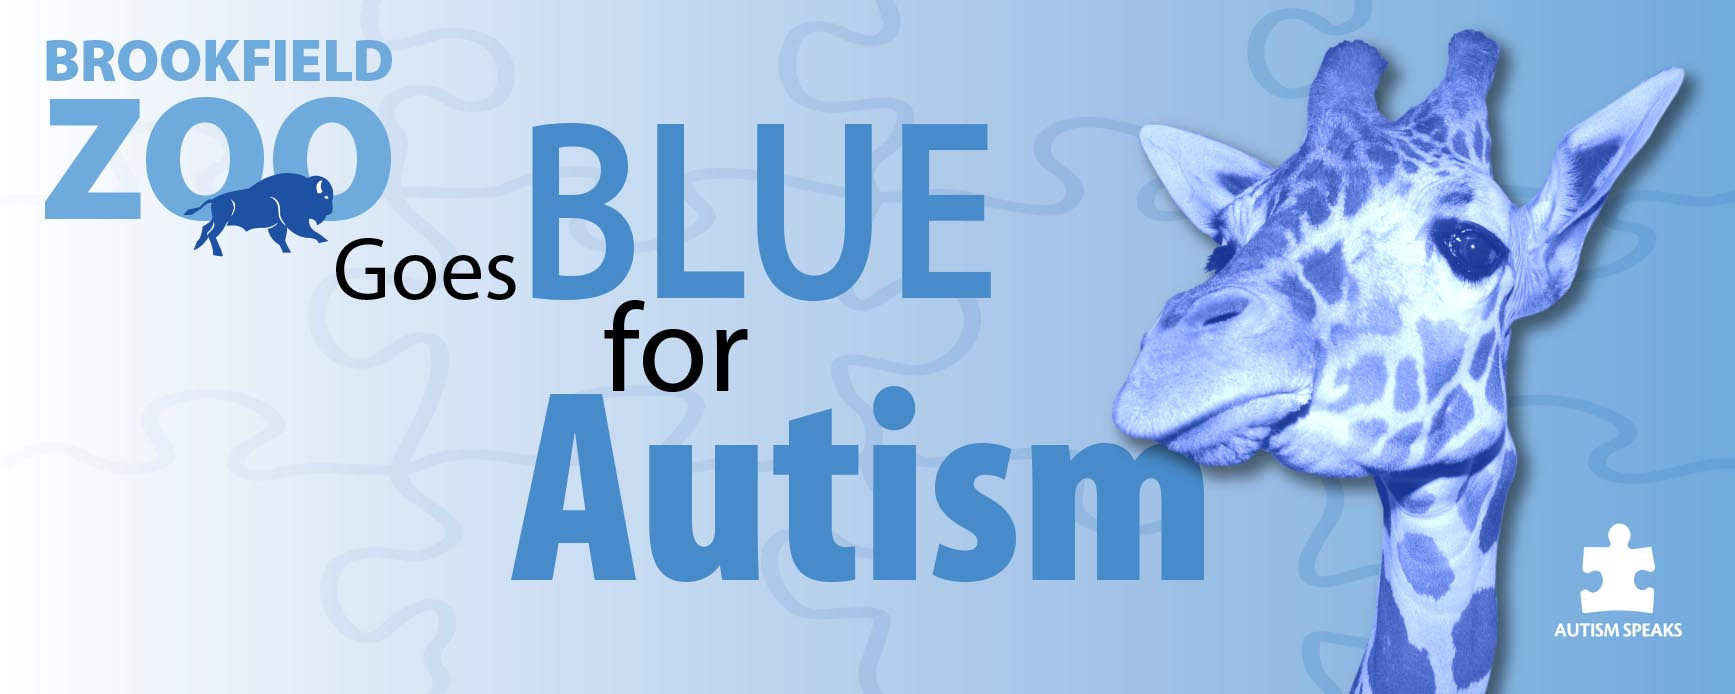 Brookfield Zoo Goes Blue for Autism